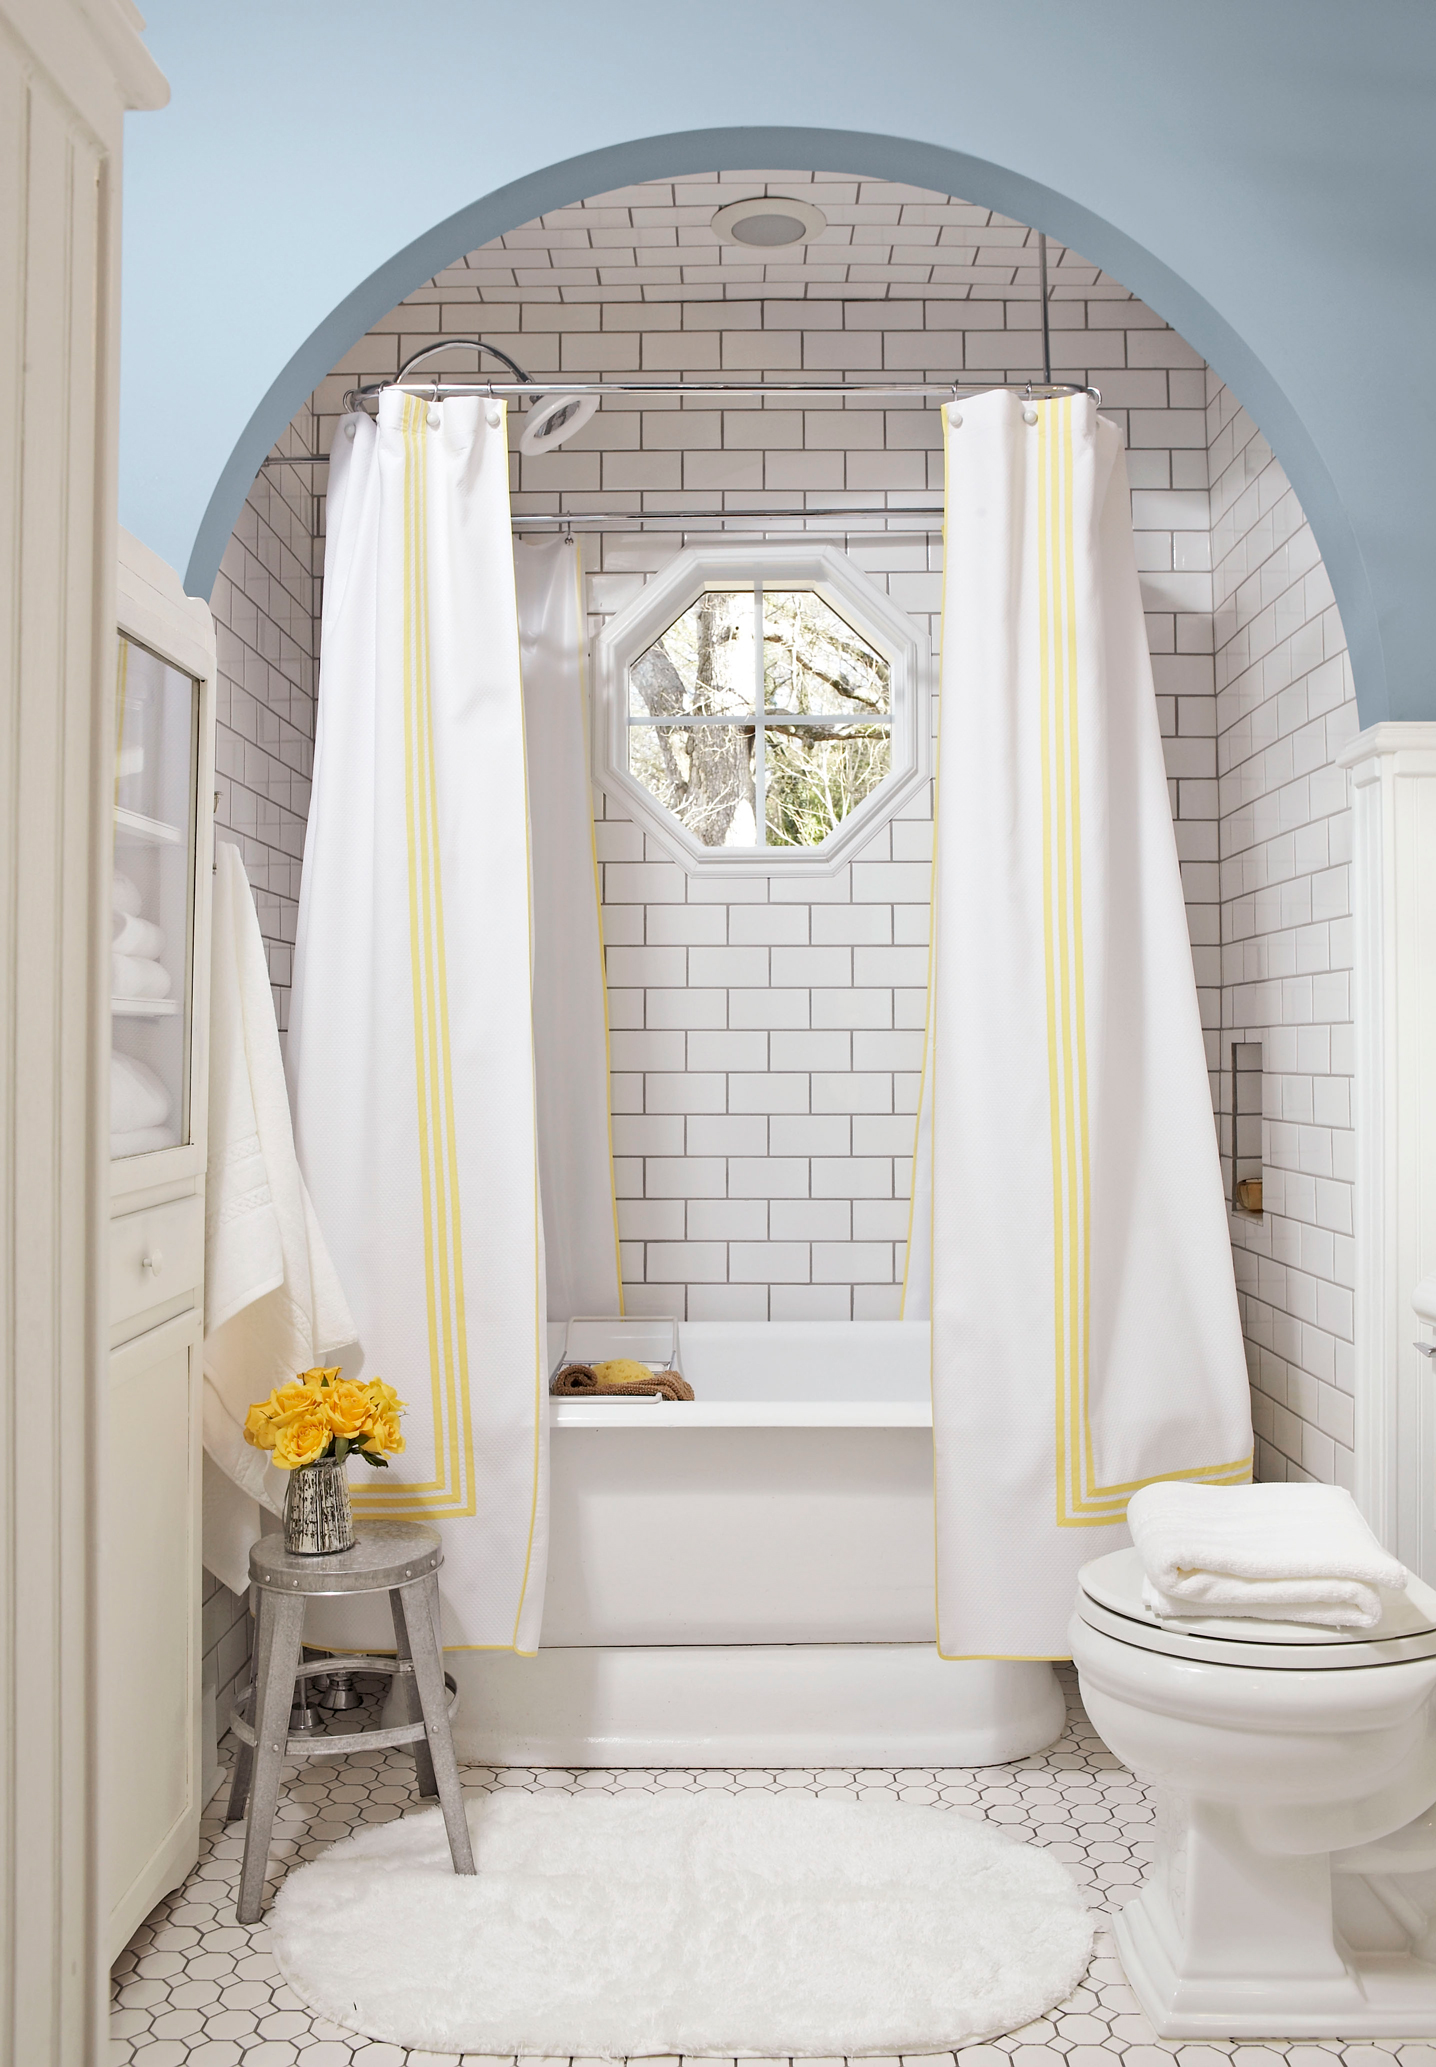 9 Steps To A Brilliant Bathroom Makeover Cheap Bathroom Renovation Ideas